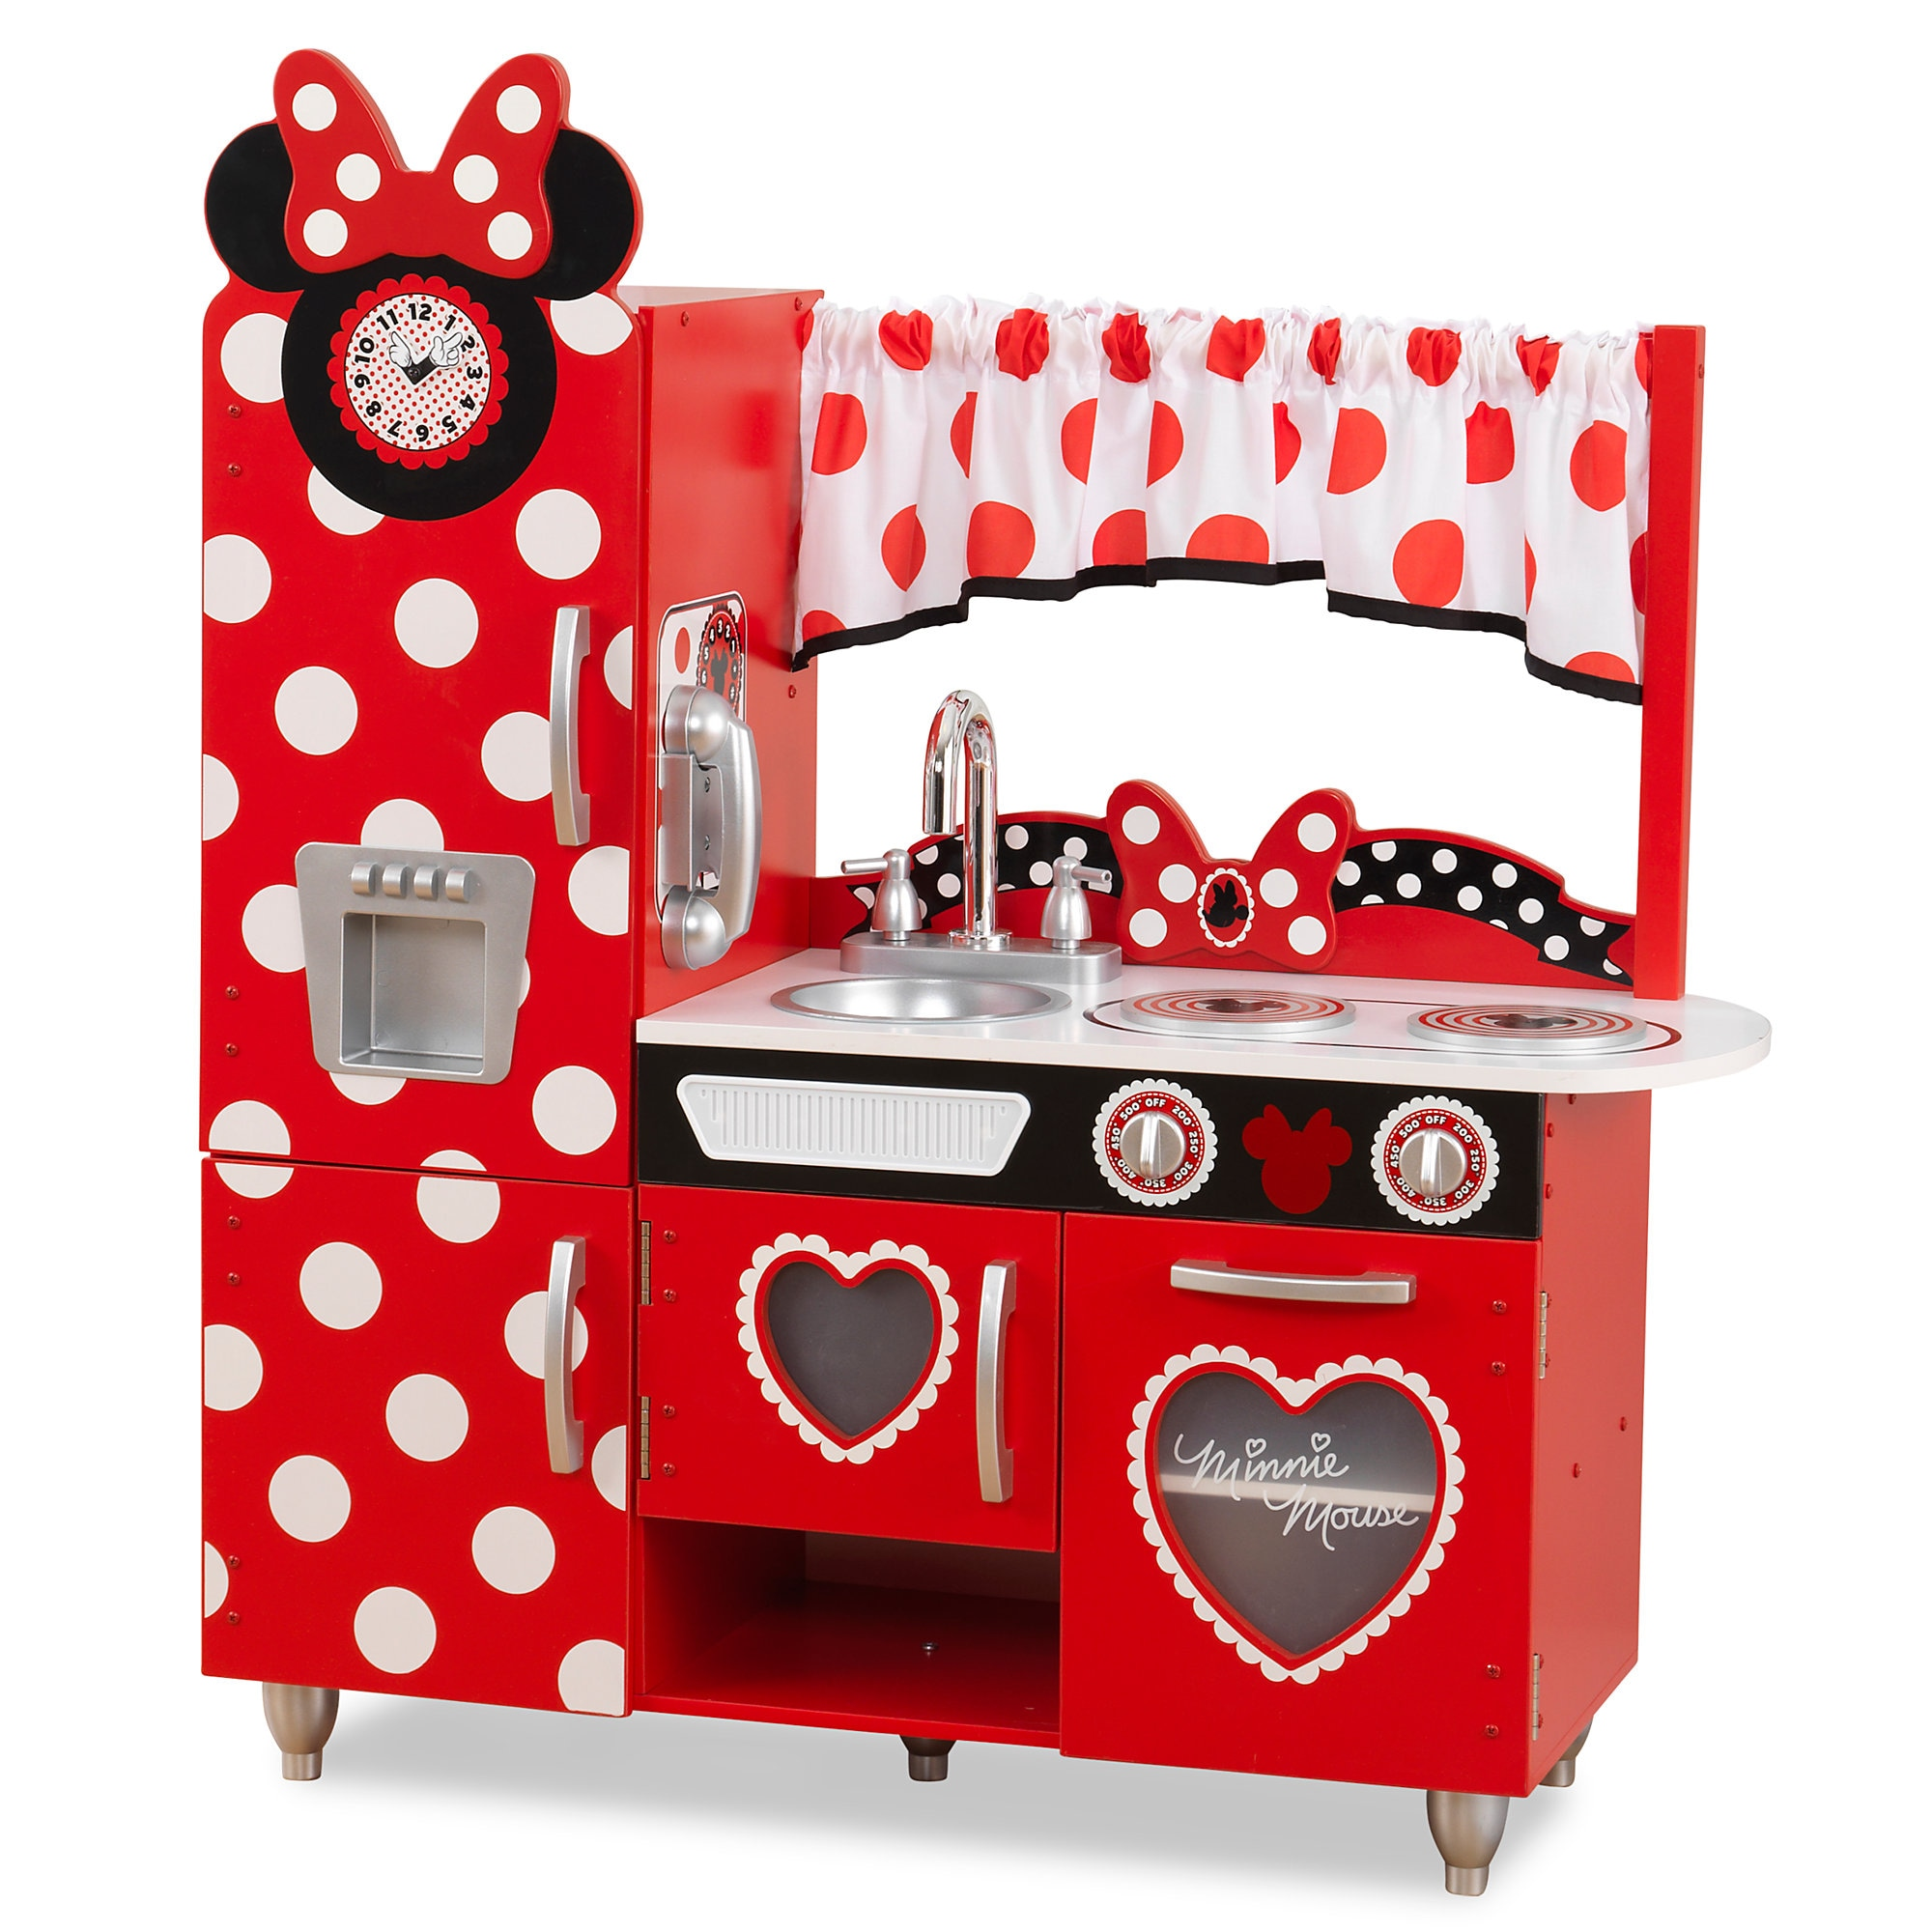 Product Image Of Minnie Mouse Vintage Play Kitchen By KidKraft # 1